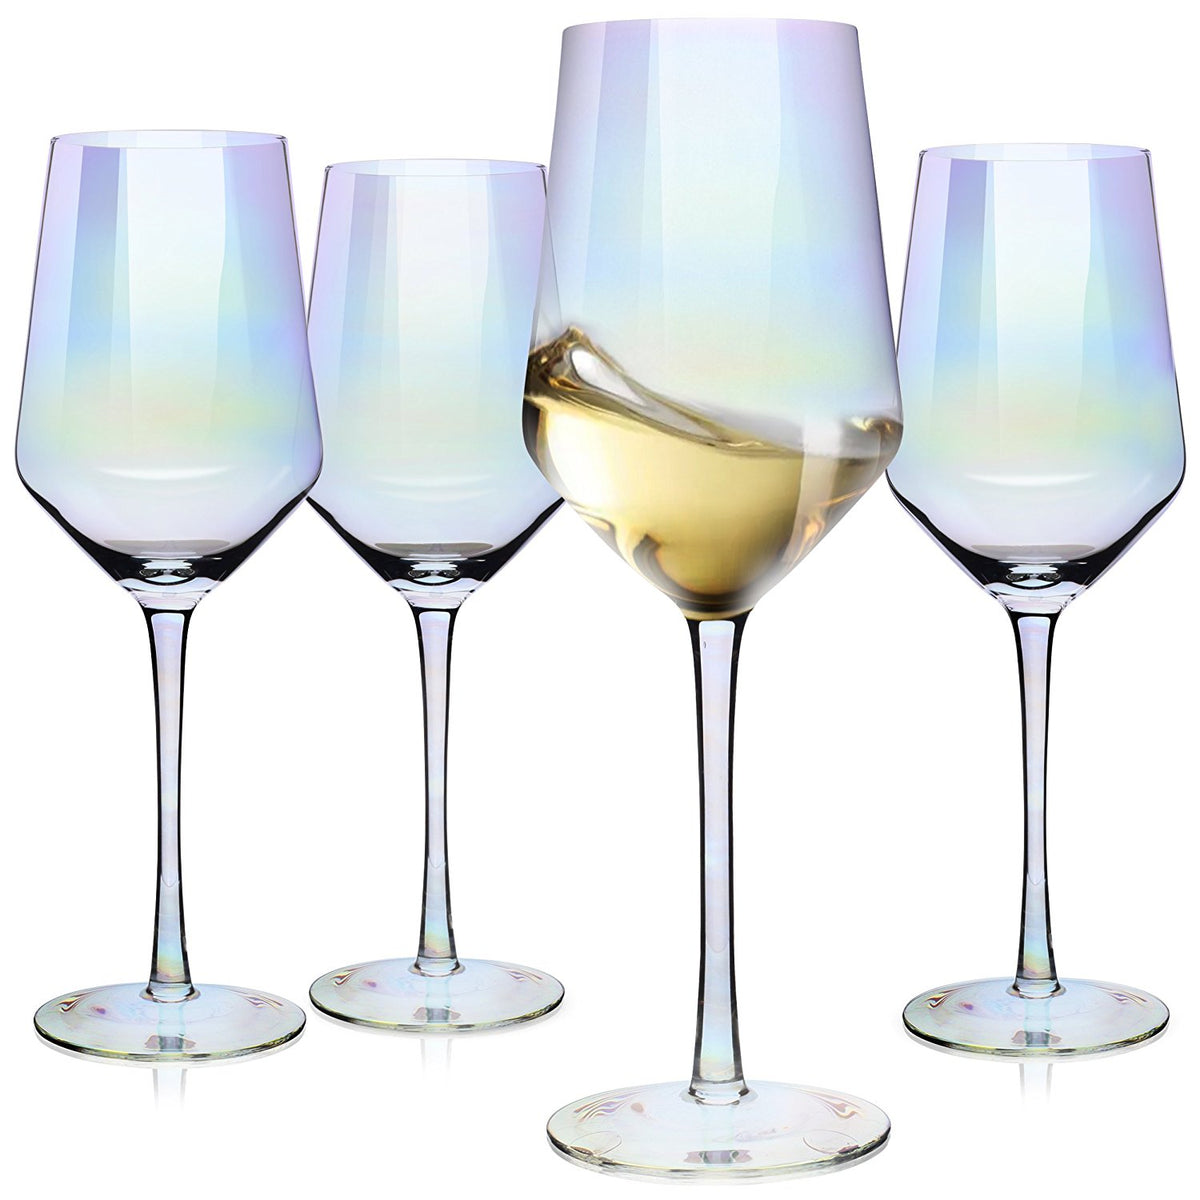 WineRainbow™ - Premium Rainbow Iridescent Crystal Wine Glasses